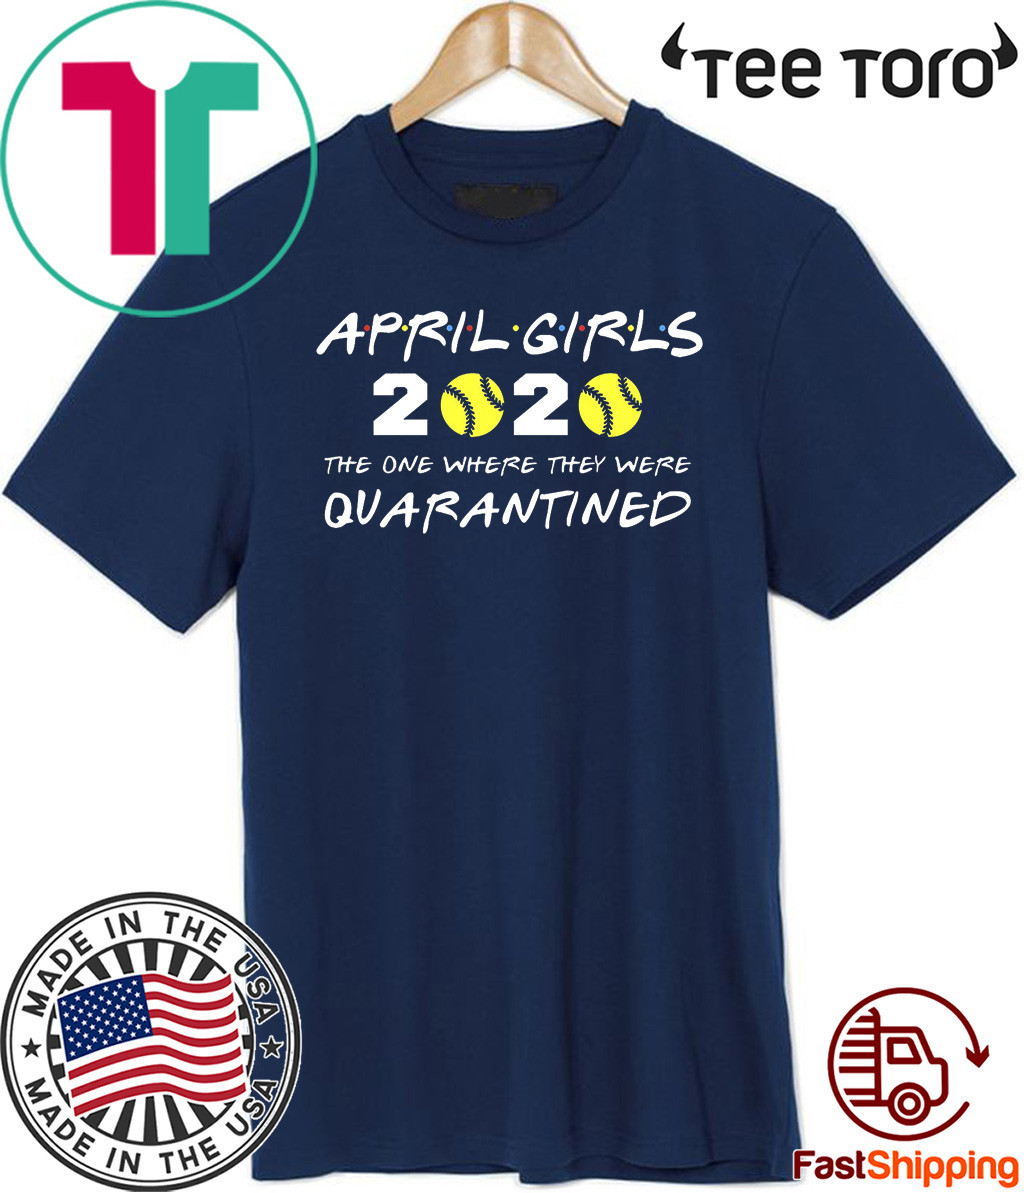 April Girls 2020 The One Where They Were Quarantined Shirt - Friends Inspired Softball Players 2020 The One Where They Were Quarantined TShirt - I Celebrate My Birthday In Quarantine Shirt